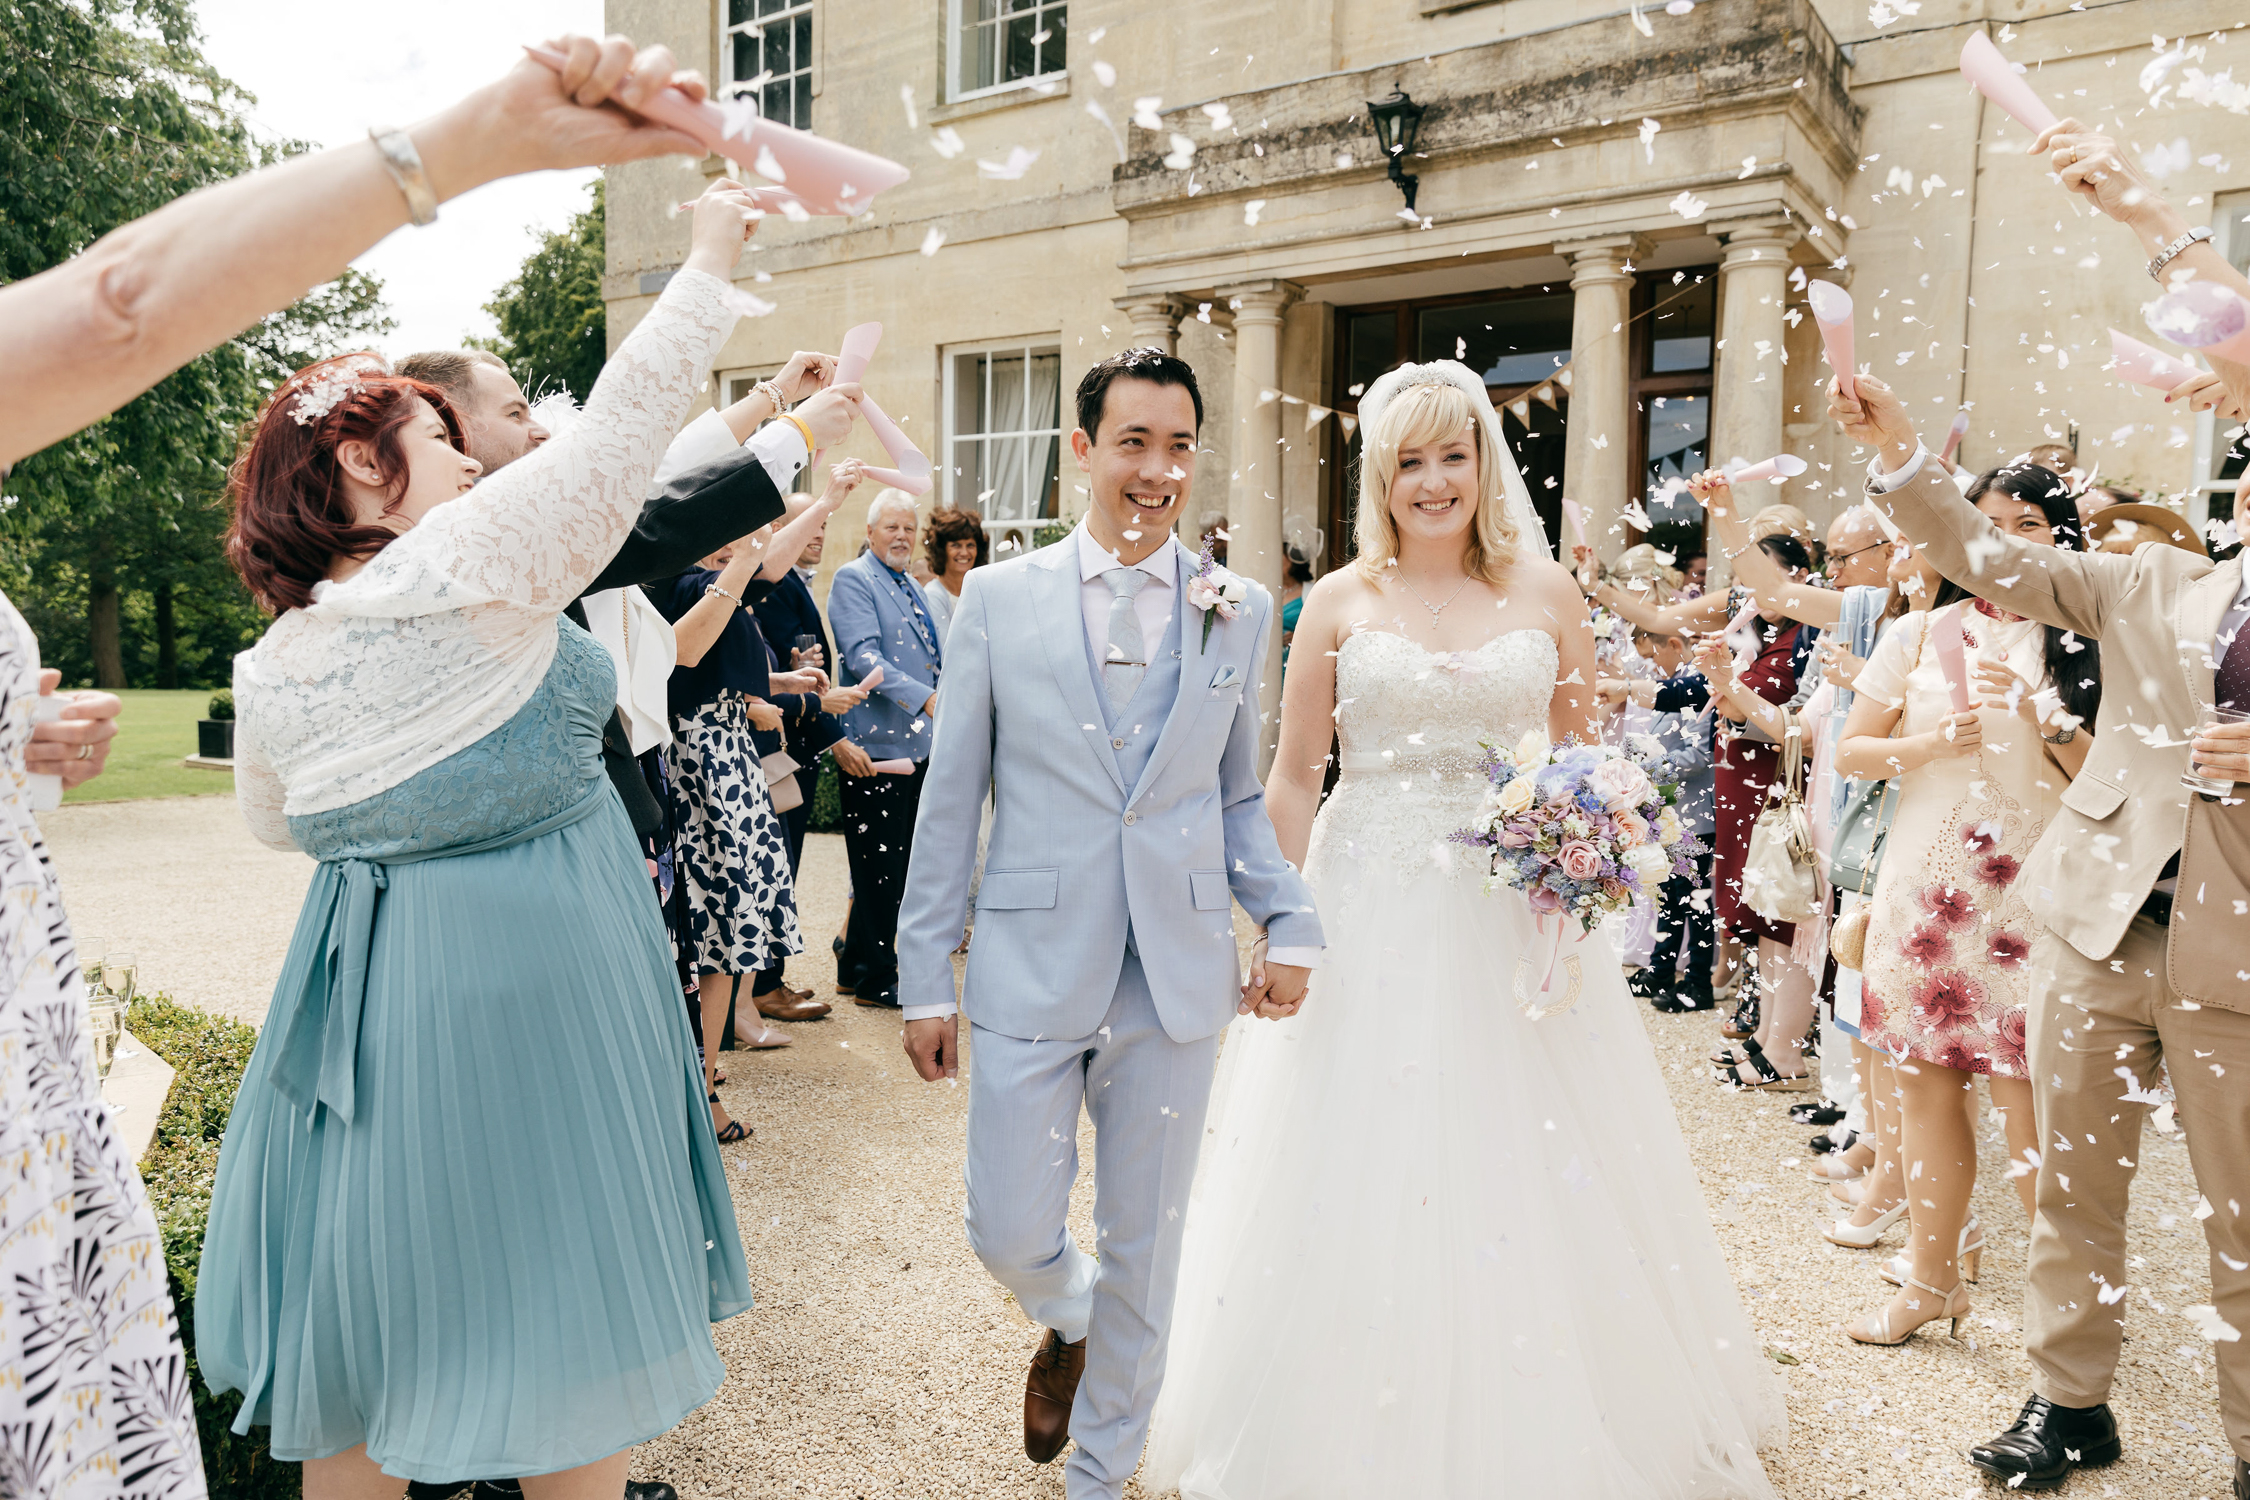 candid photo of joyful couple walking through confetti at pastel themed wedding at eastington park